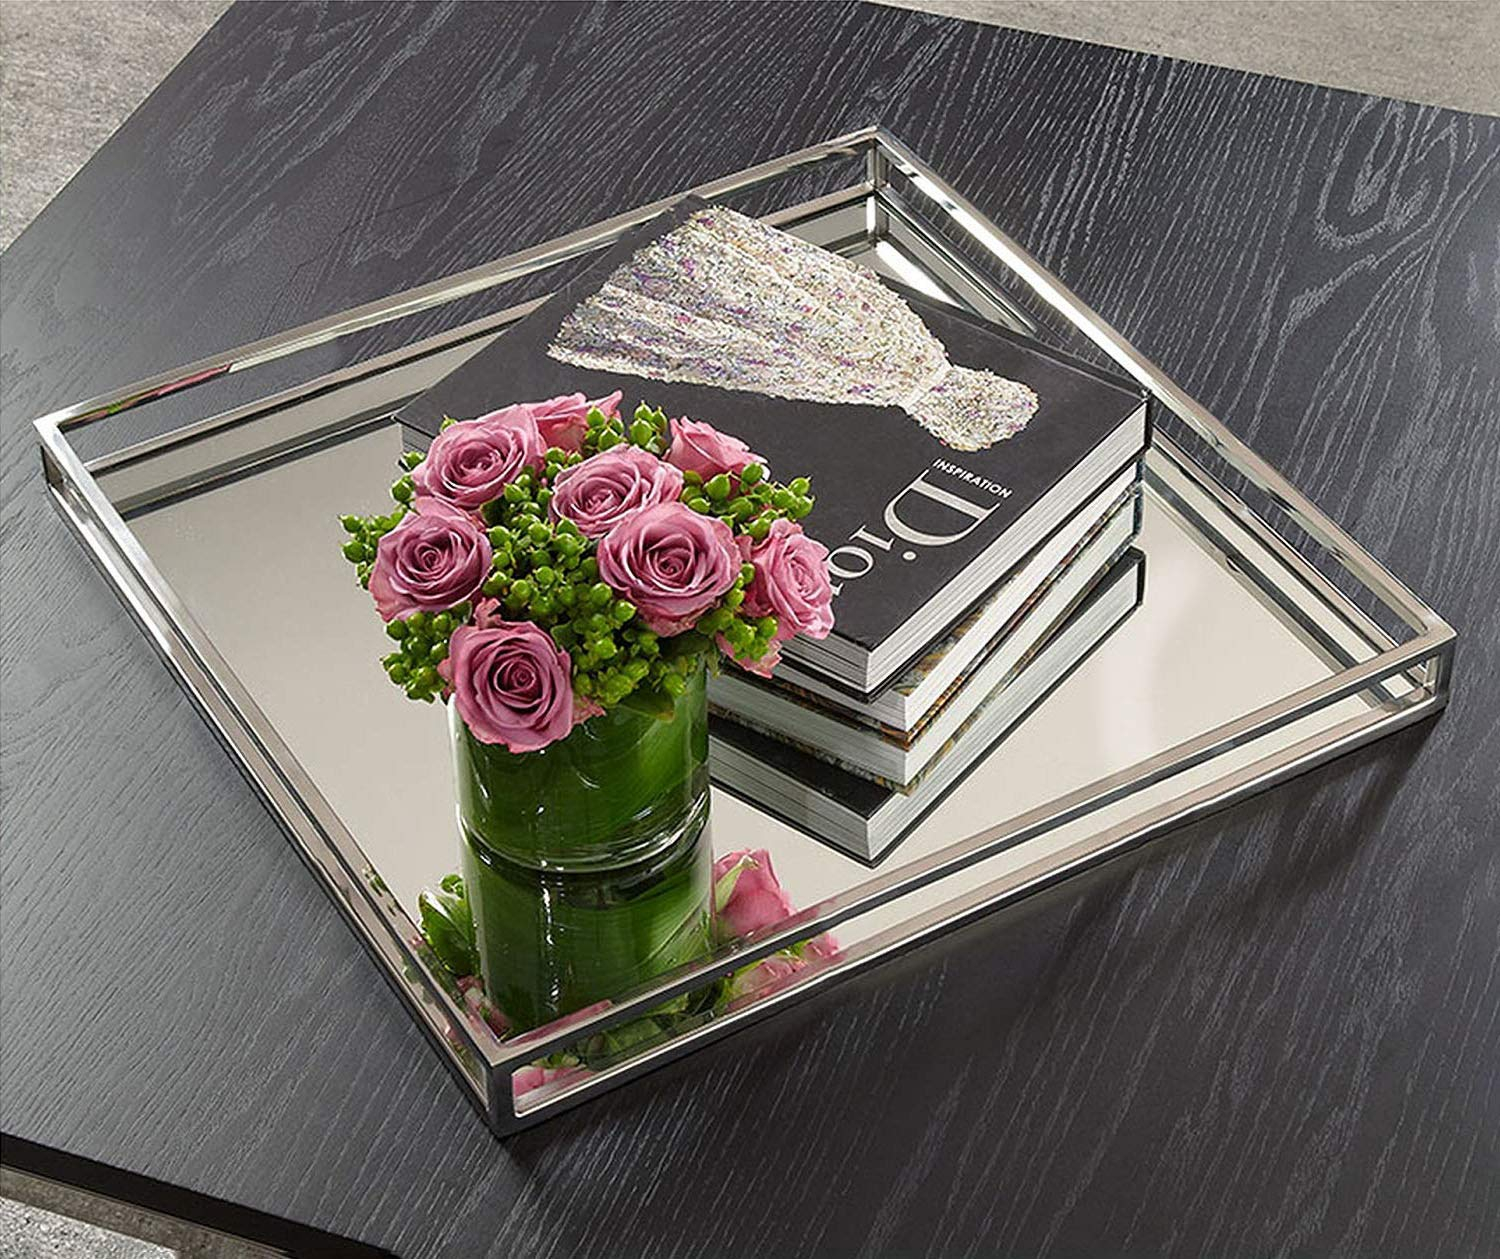 Le'raze Beautiful Mirrored Tray with Chrome Rails, Elegant Square Vanity Mirror Tray with with Side Bars, Makes A Great Bling Gift by Le'raze (Image #1)